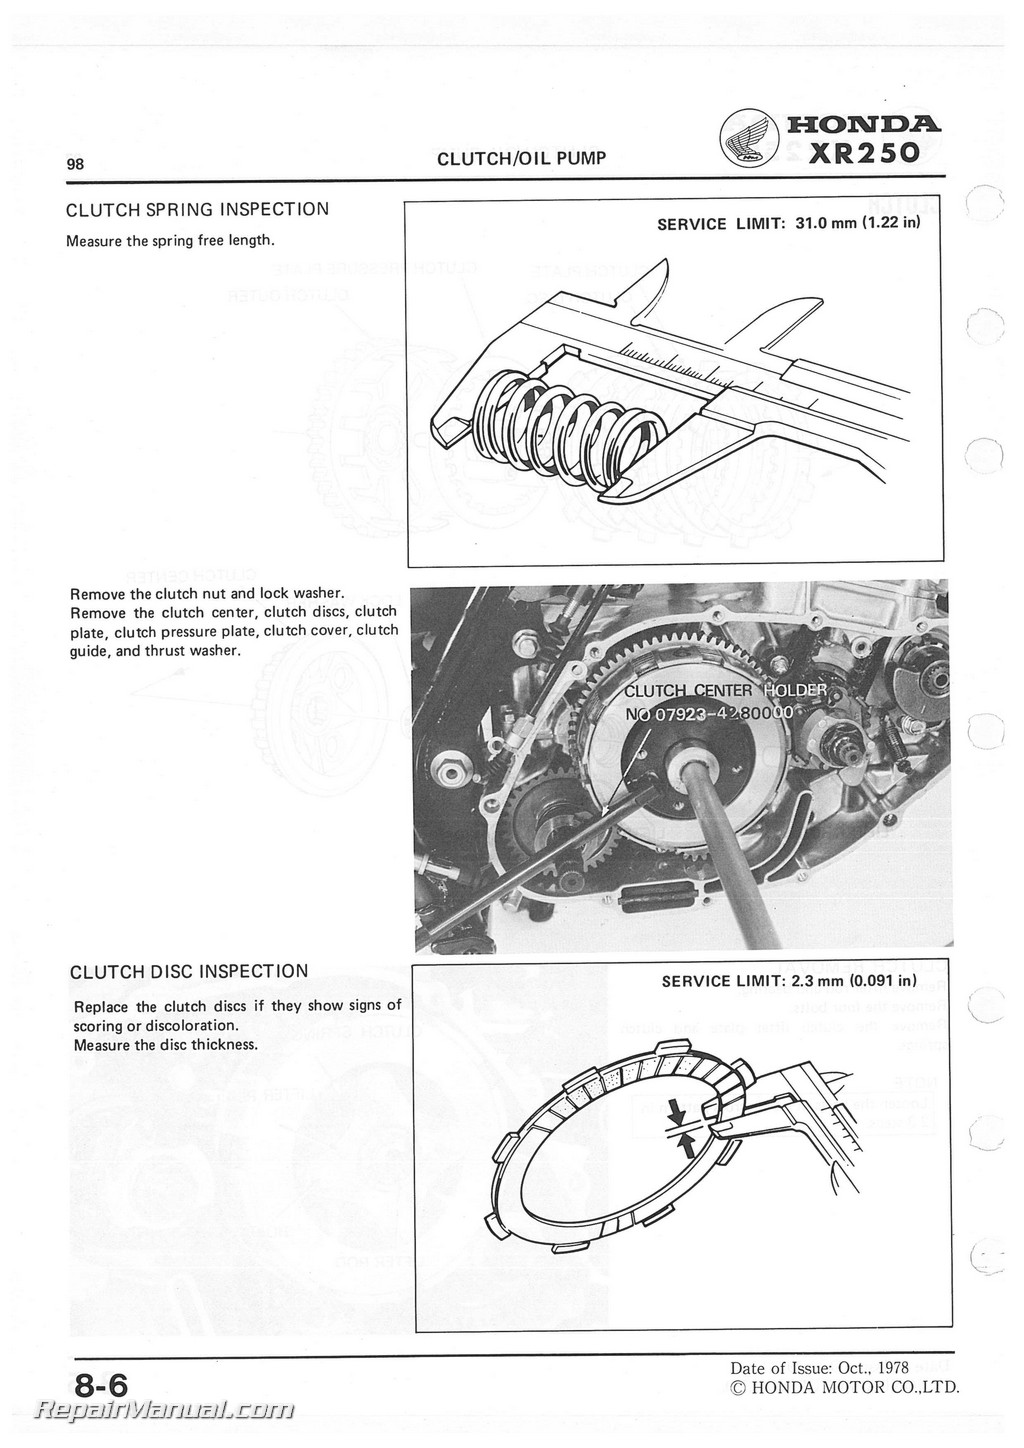 Honda XR250 1979-1980 Service Manual